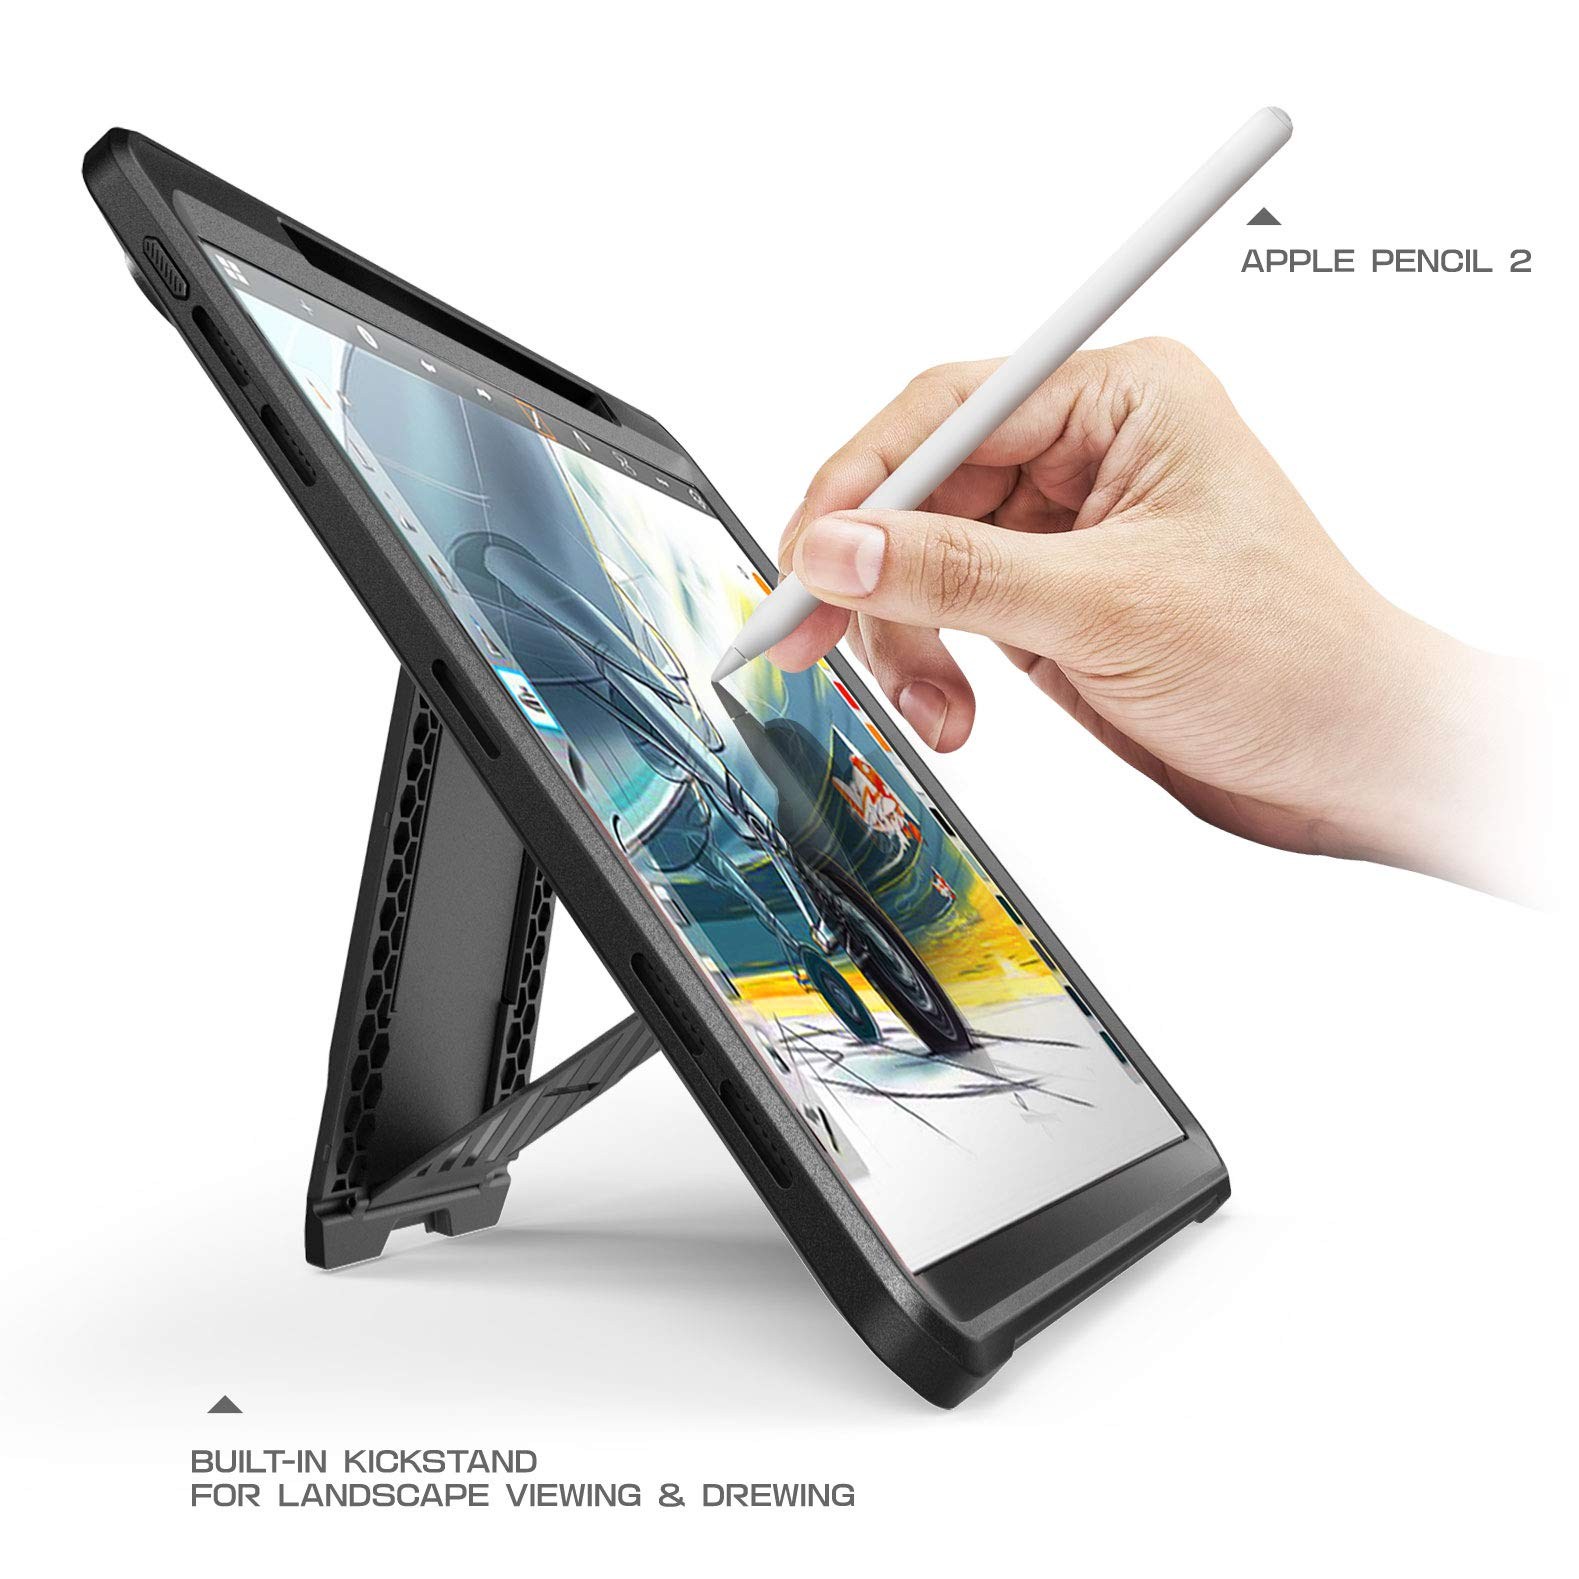 SUPCASE Case for iPad Pro 11 2018, Support Pencil Charging with Built-in Screen Protector Full-Body Rugged Kickstand Protective Case for iPad Pro 11 inch 2018 Release-UB Pro Series (Black) by SUPCASE (Image #4)